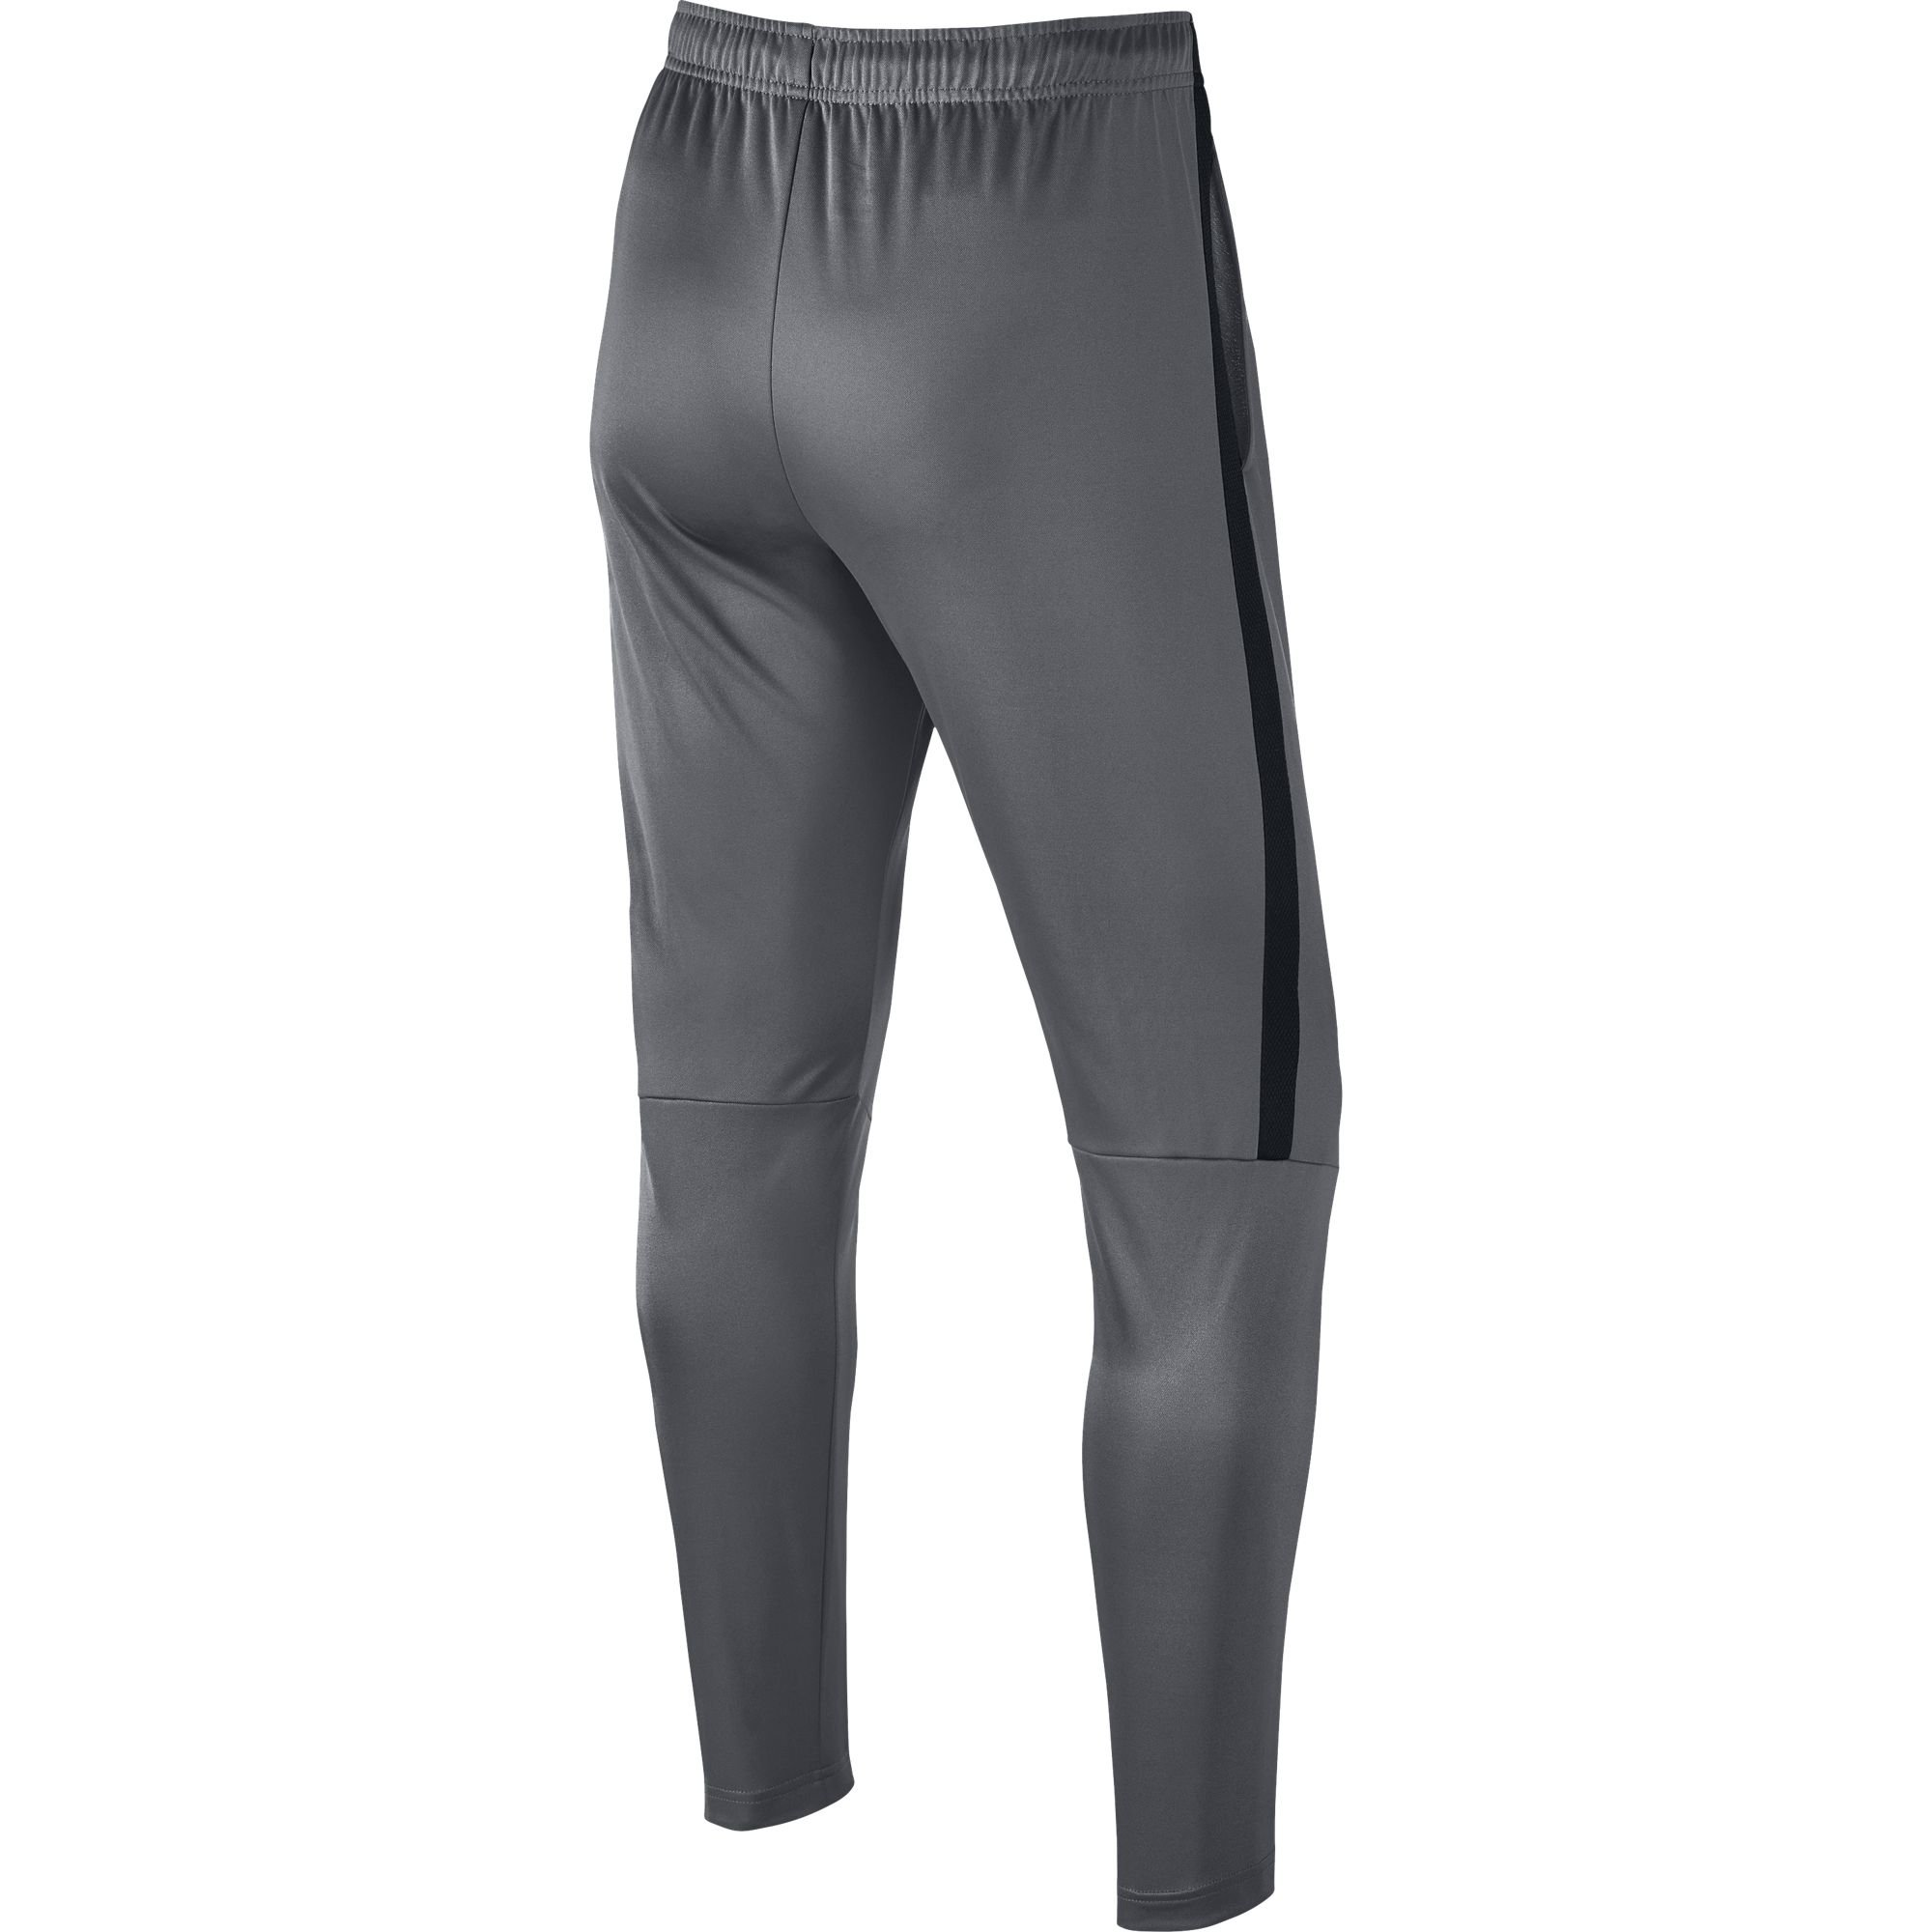 NIKE Men's Epic Knit Pants, Cool Grey/Black/Black/Black, Small by Nike (Image #2)